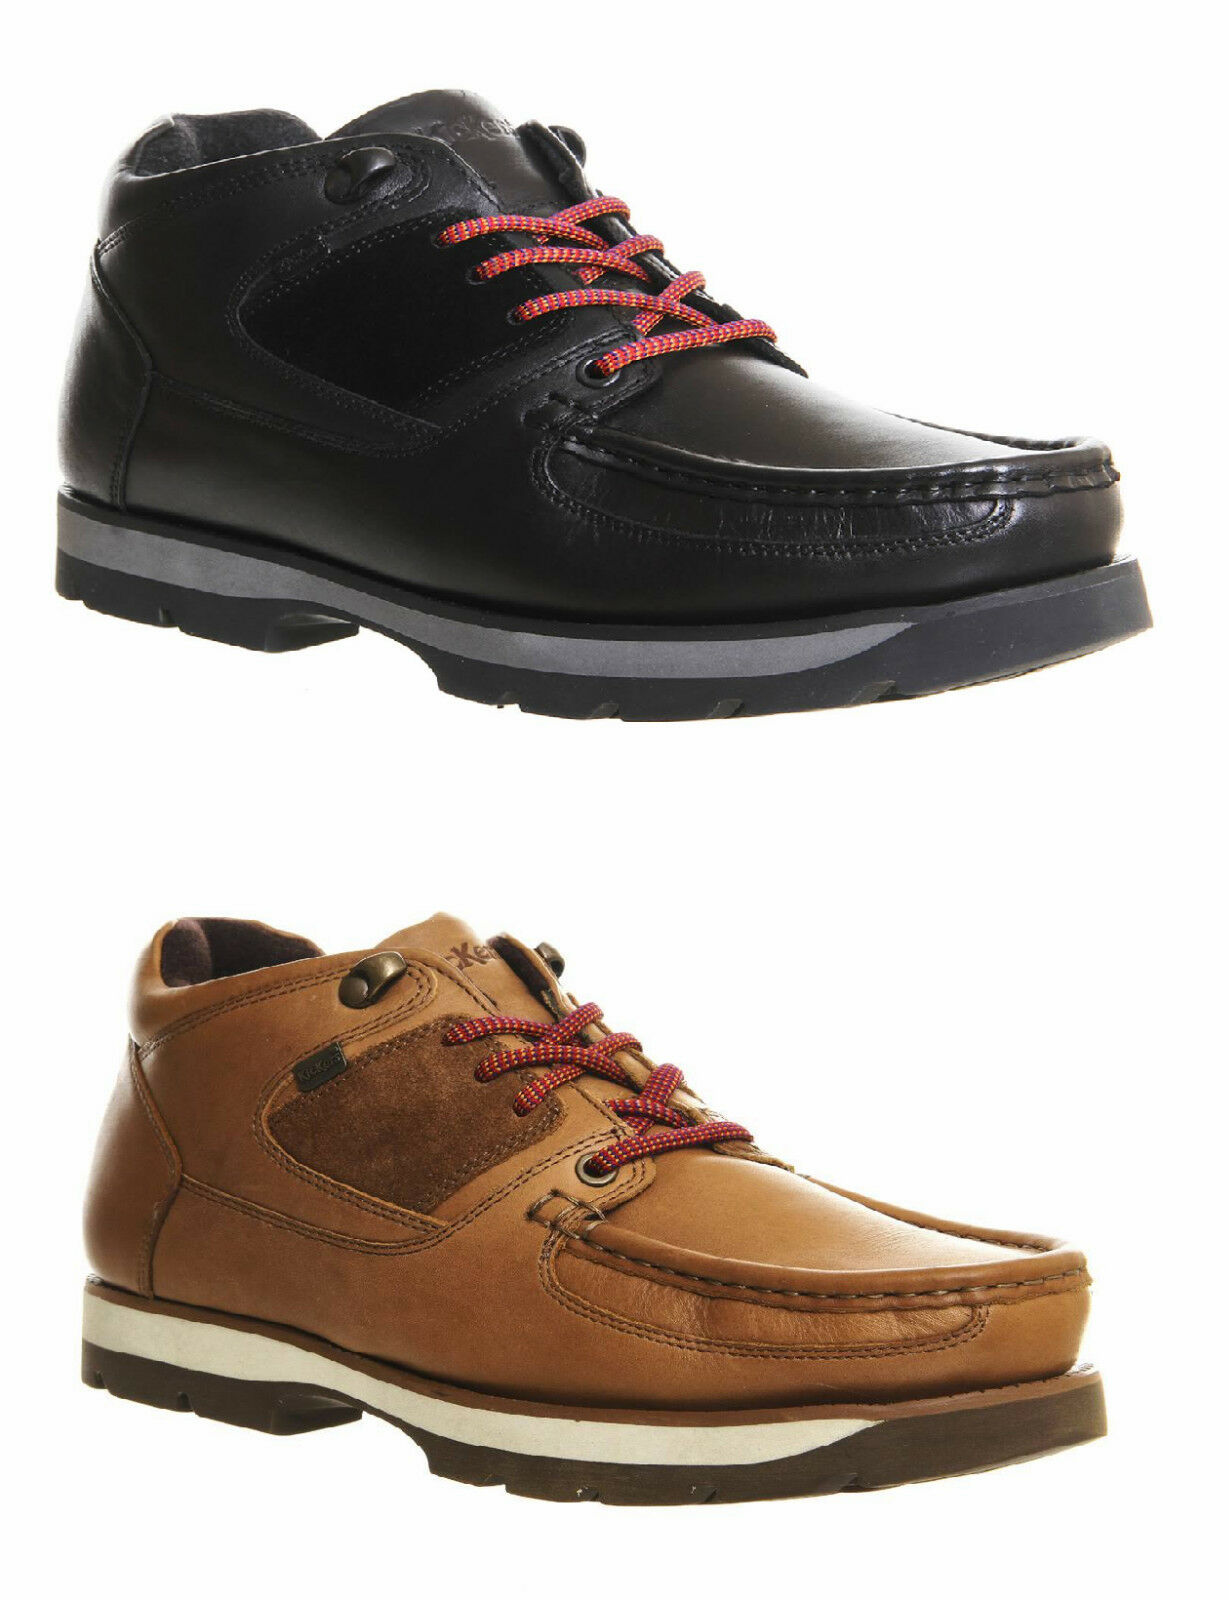 Kickers Uomo Bosley Boot Boot Boot AM d33194